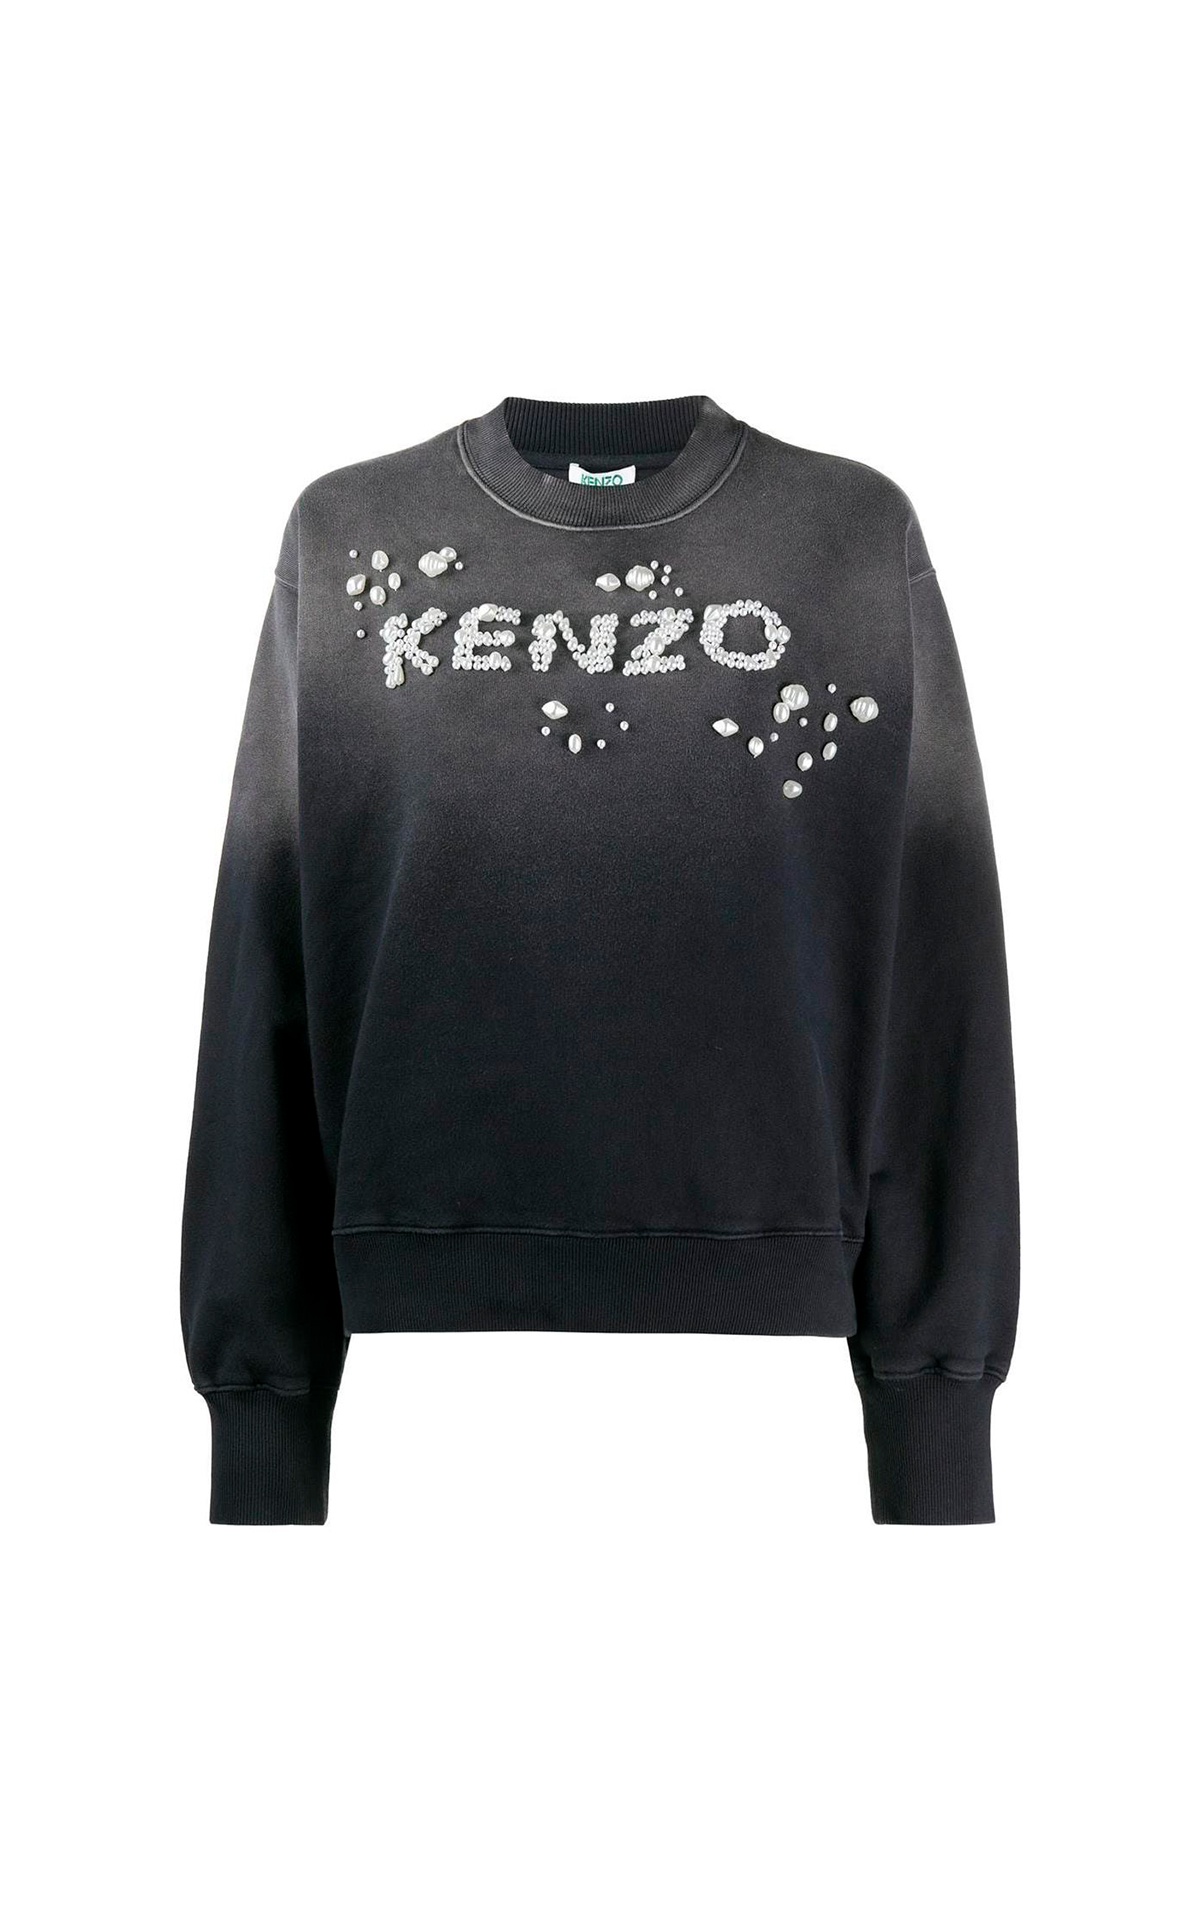 Black sweatshirt with logo and pearls Kenzo